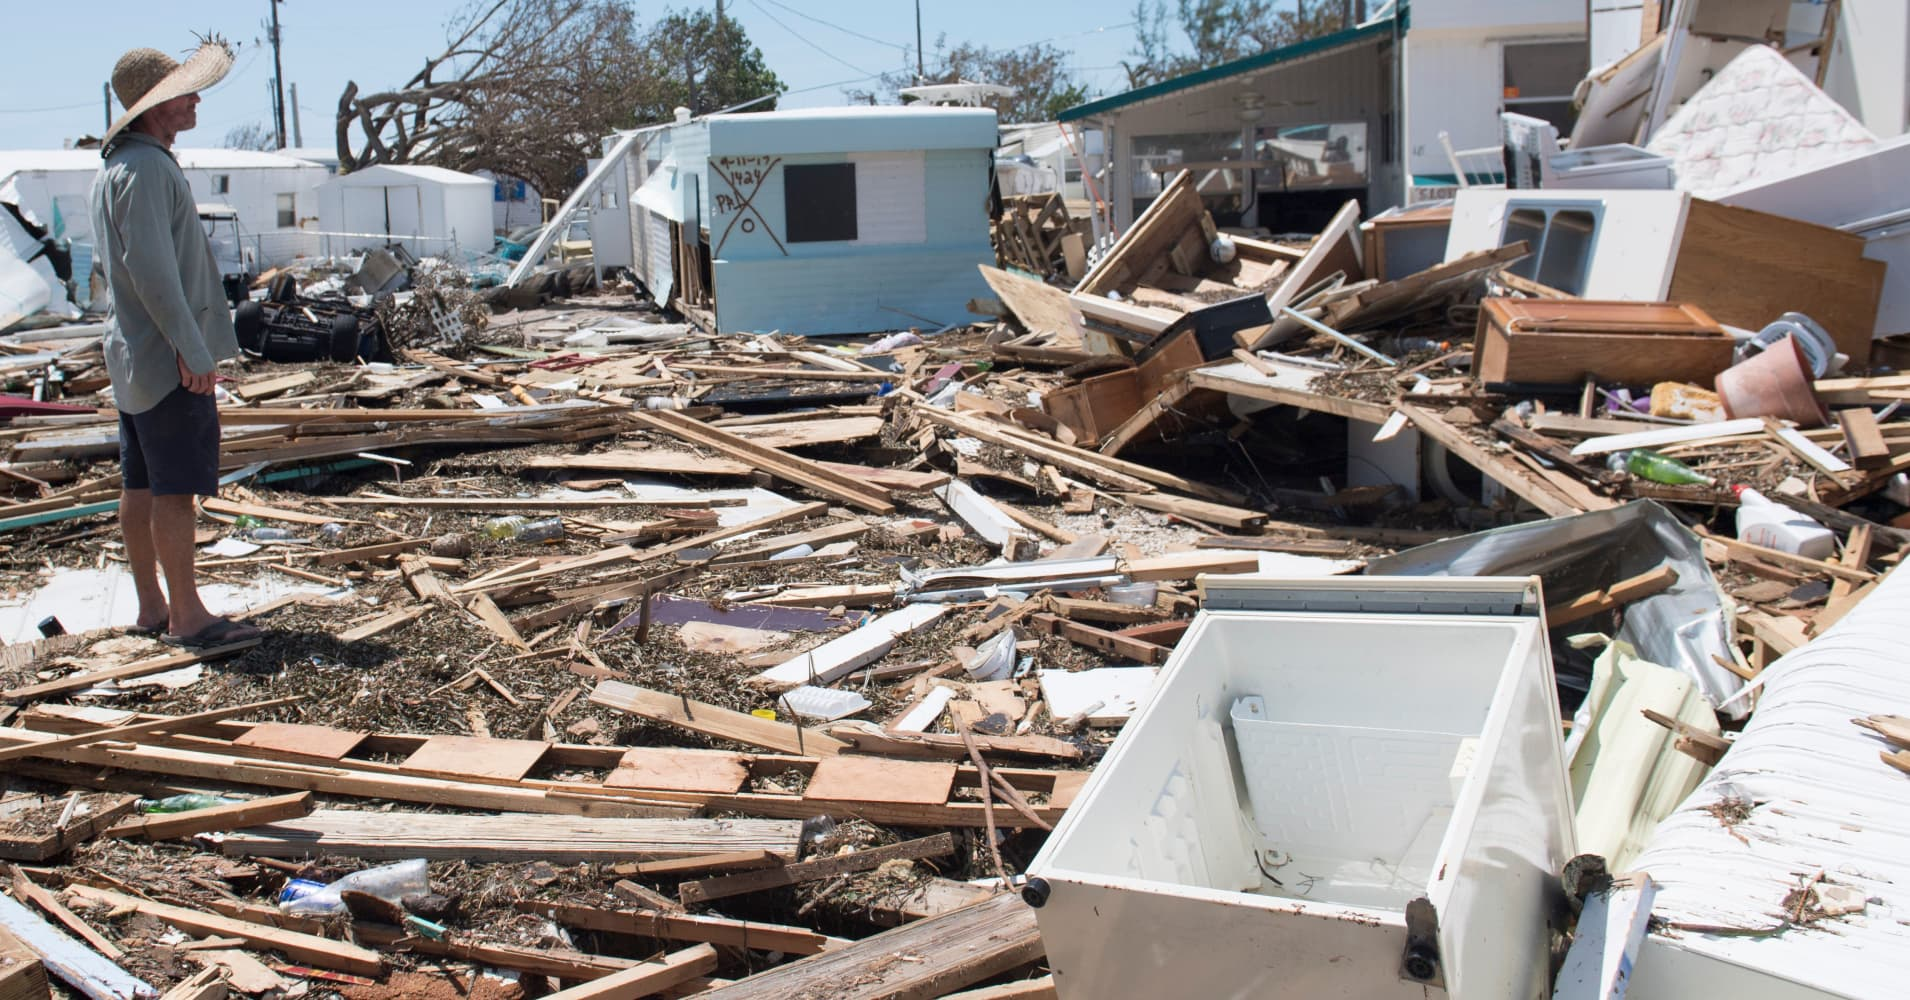 8 Jobs That Go Into Overdrive When A Natural Disaster Strikes